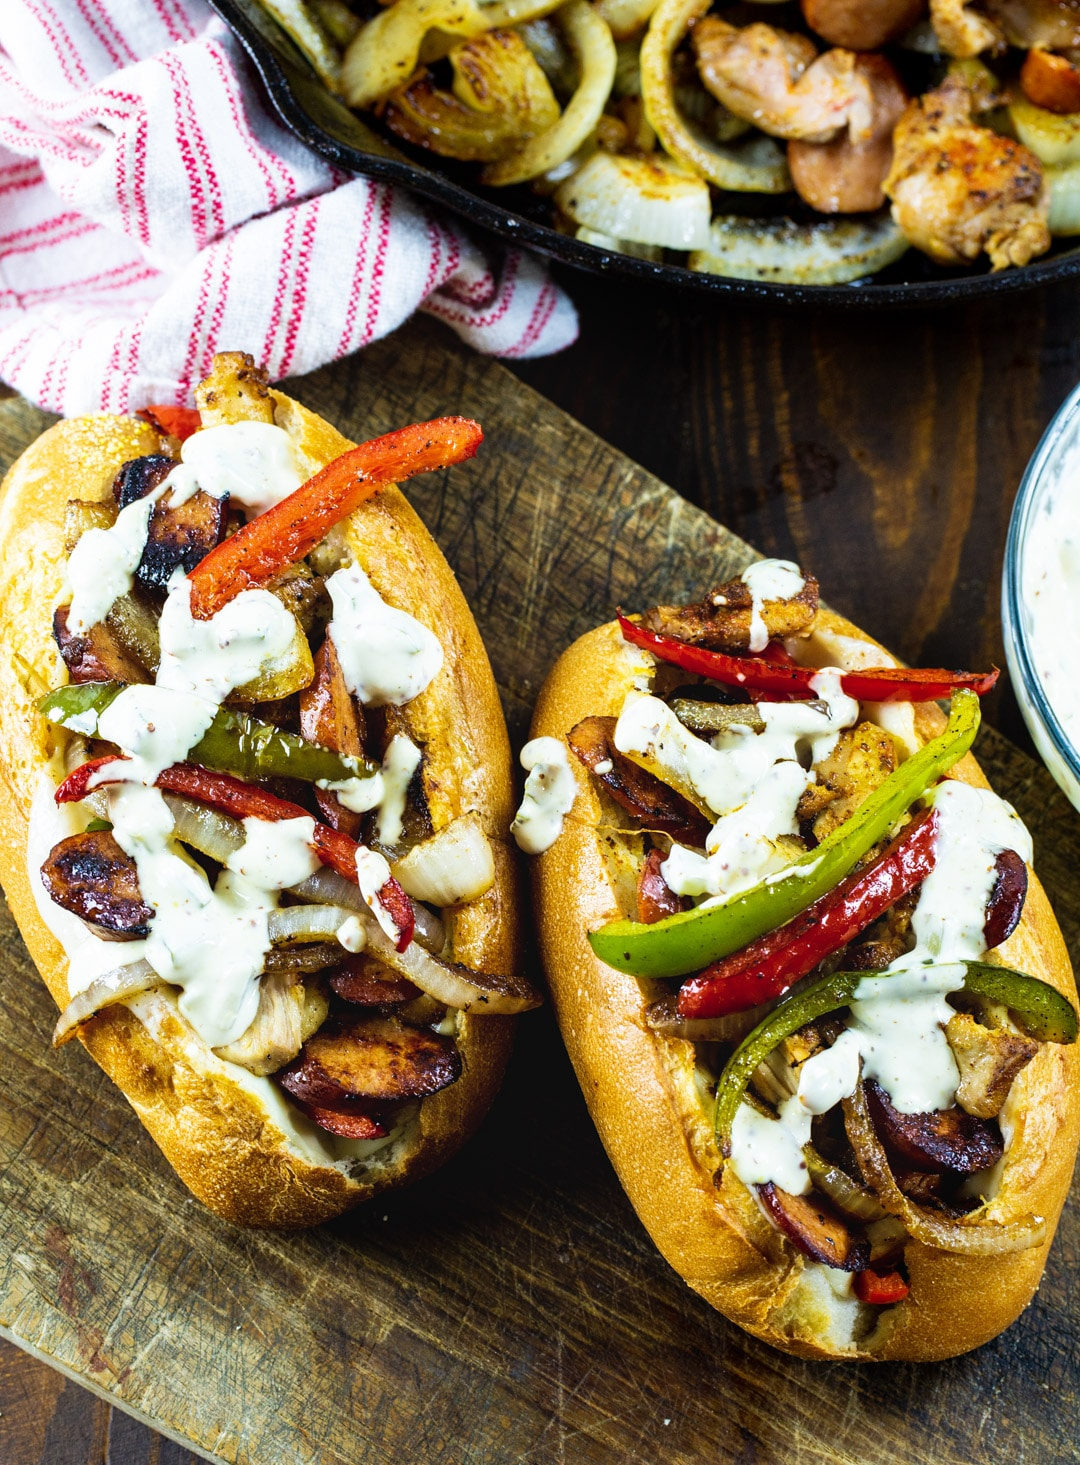 Two Chicken and Andouille Subs with skillet full of filling.